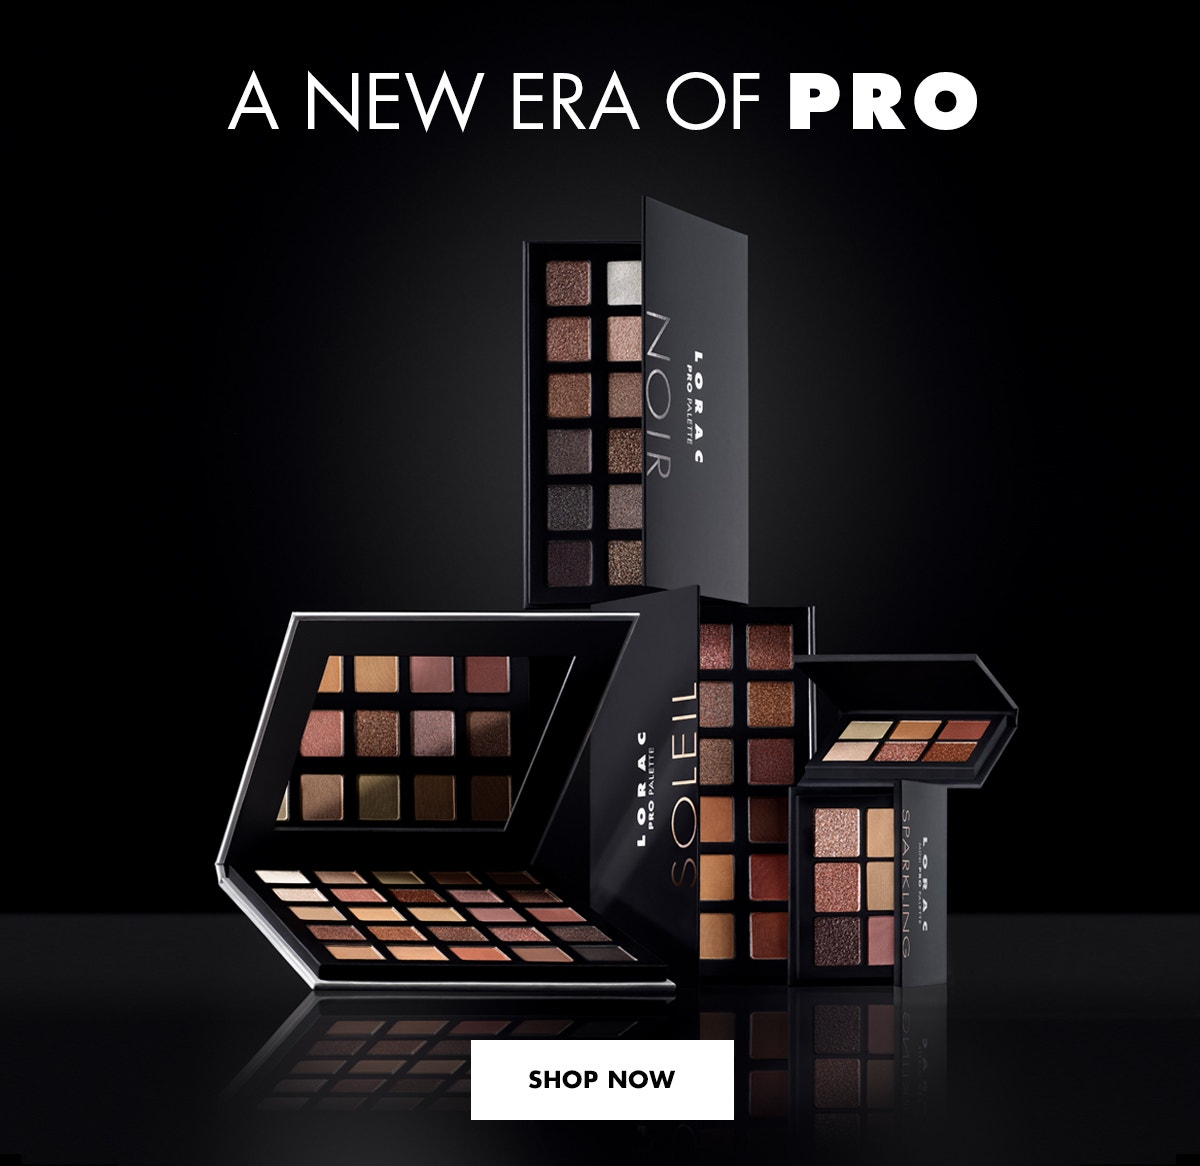 LORAC   A NEW ERA OF PRO   PALETTES LAYING IN DIFFERENT ANGELS SLIGHTLY OPEN ON A BLACK BACKGROUND   SHOP NOW